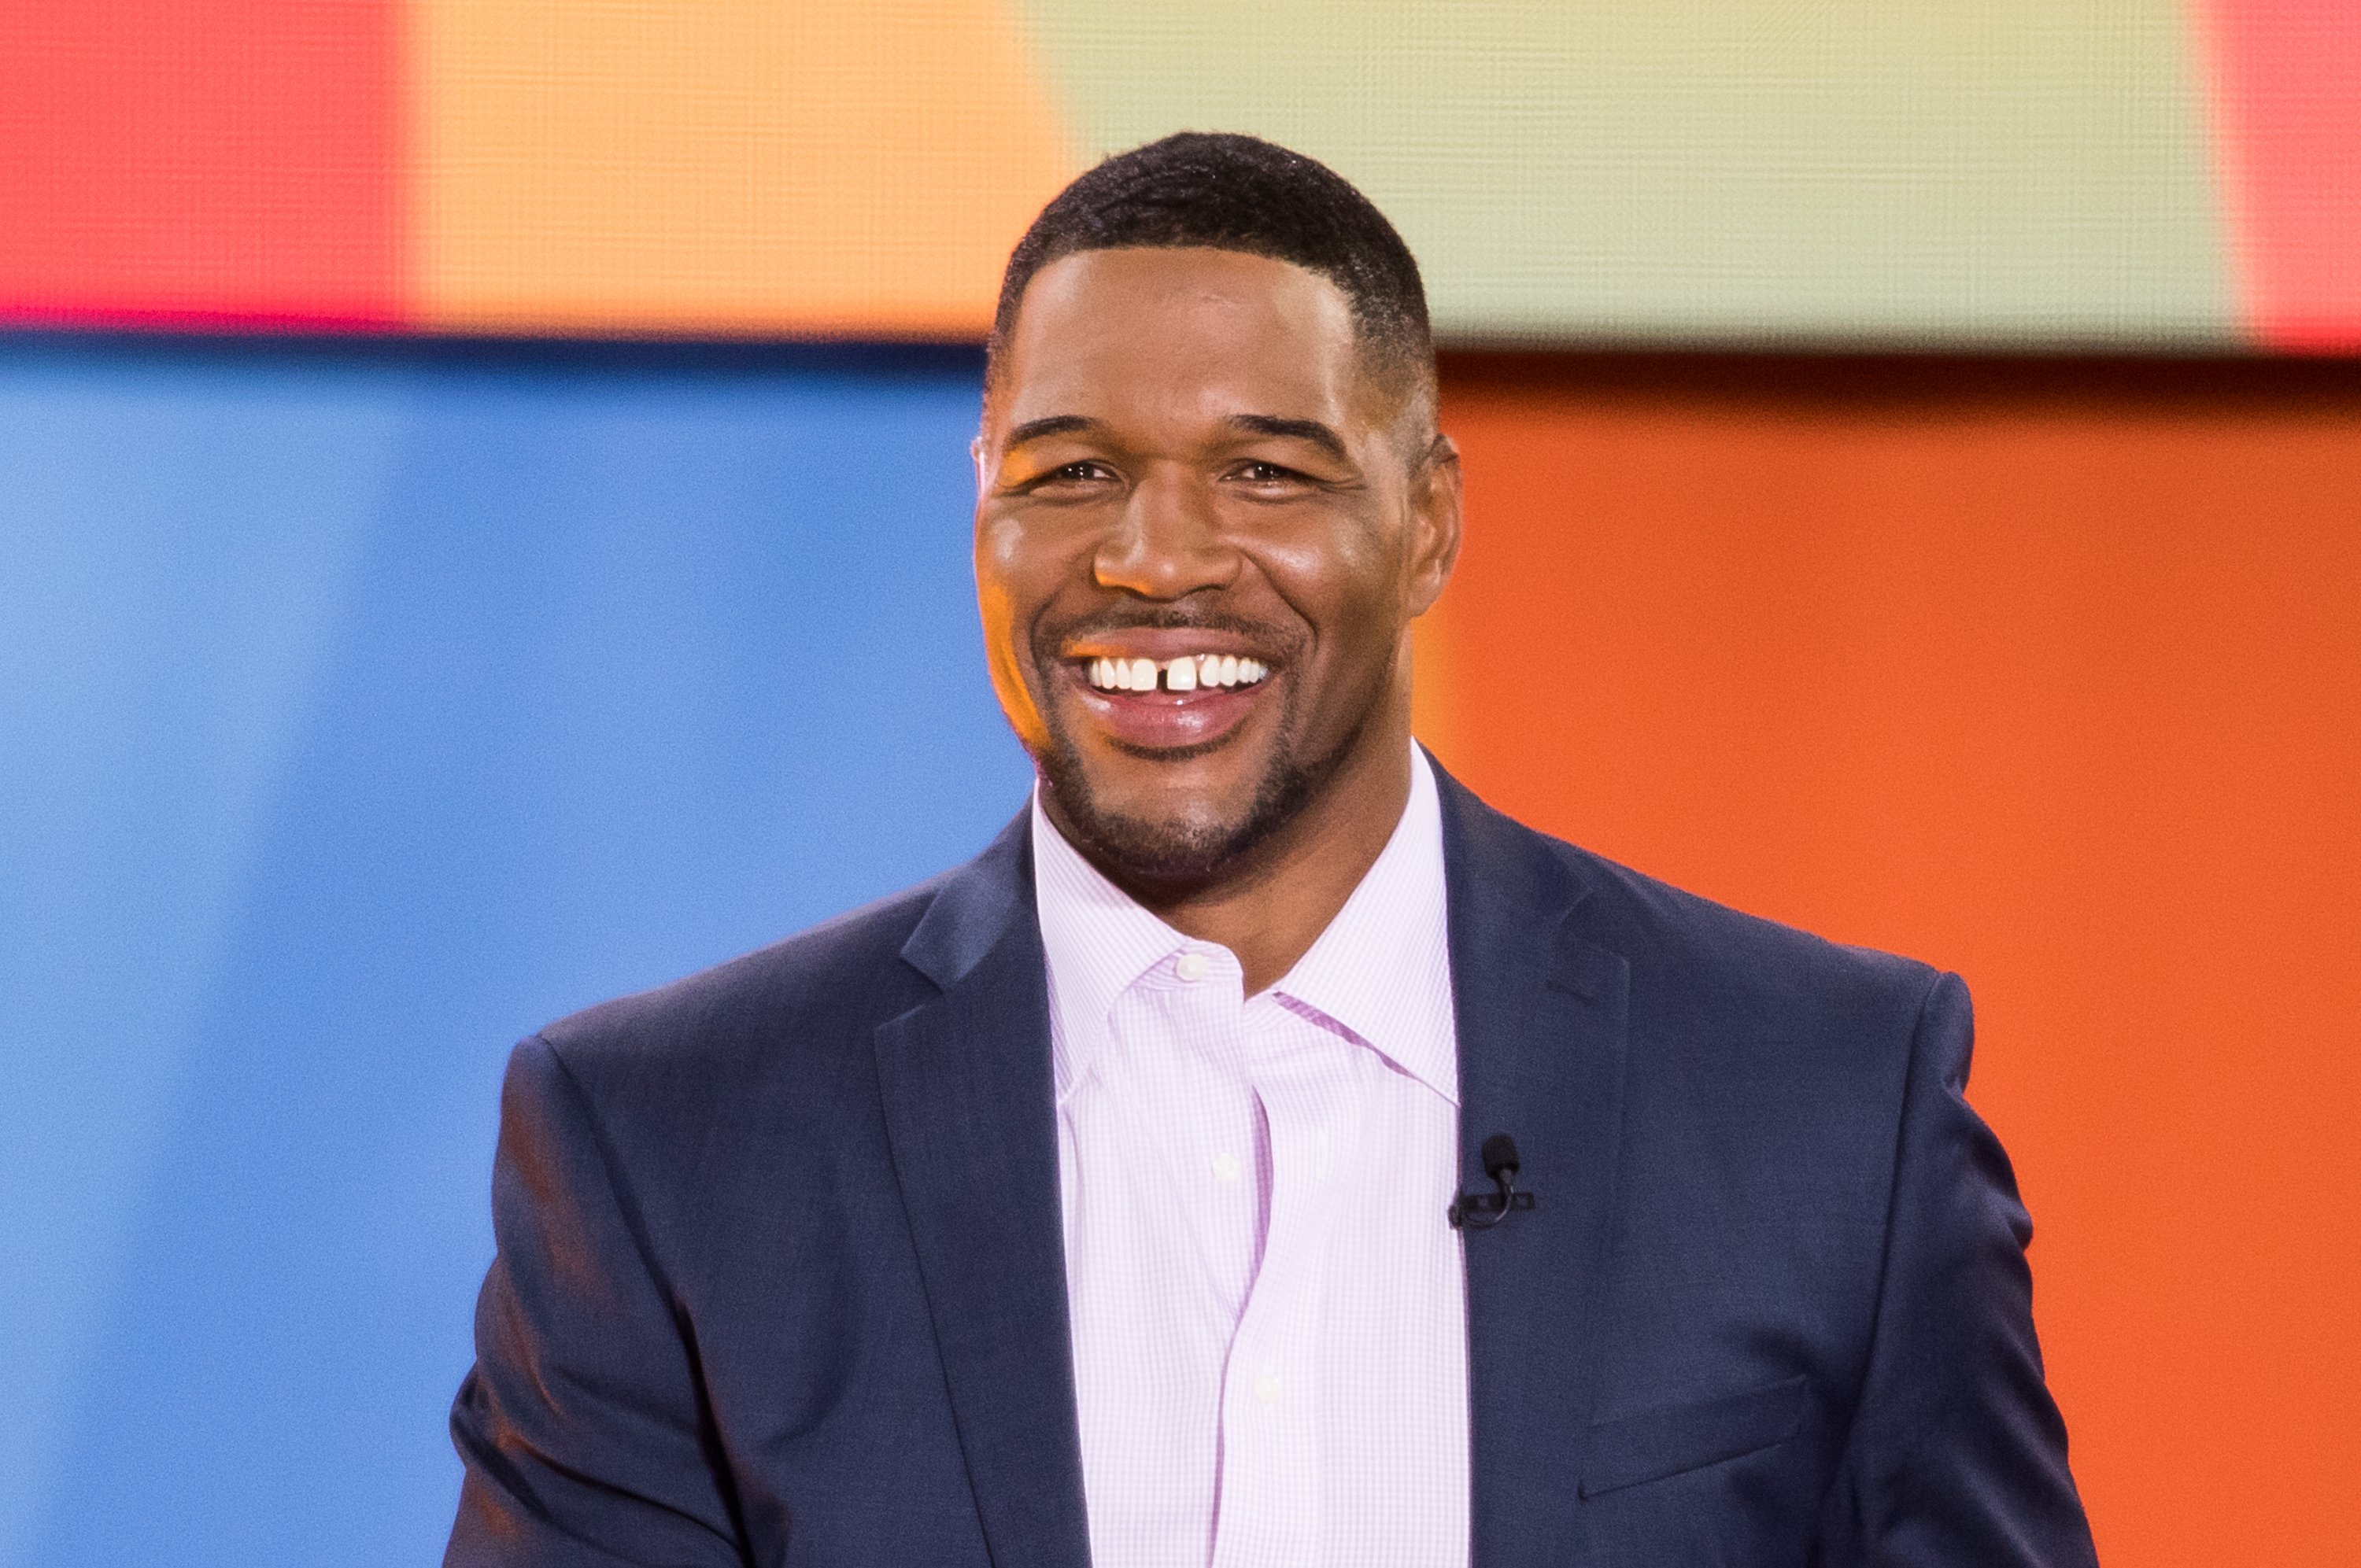 """Michael Strahan on the set of ABC's """"Good Morning America"""" on July 6, 2018 in New York City. 